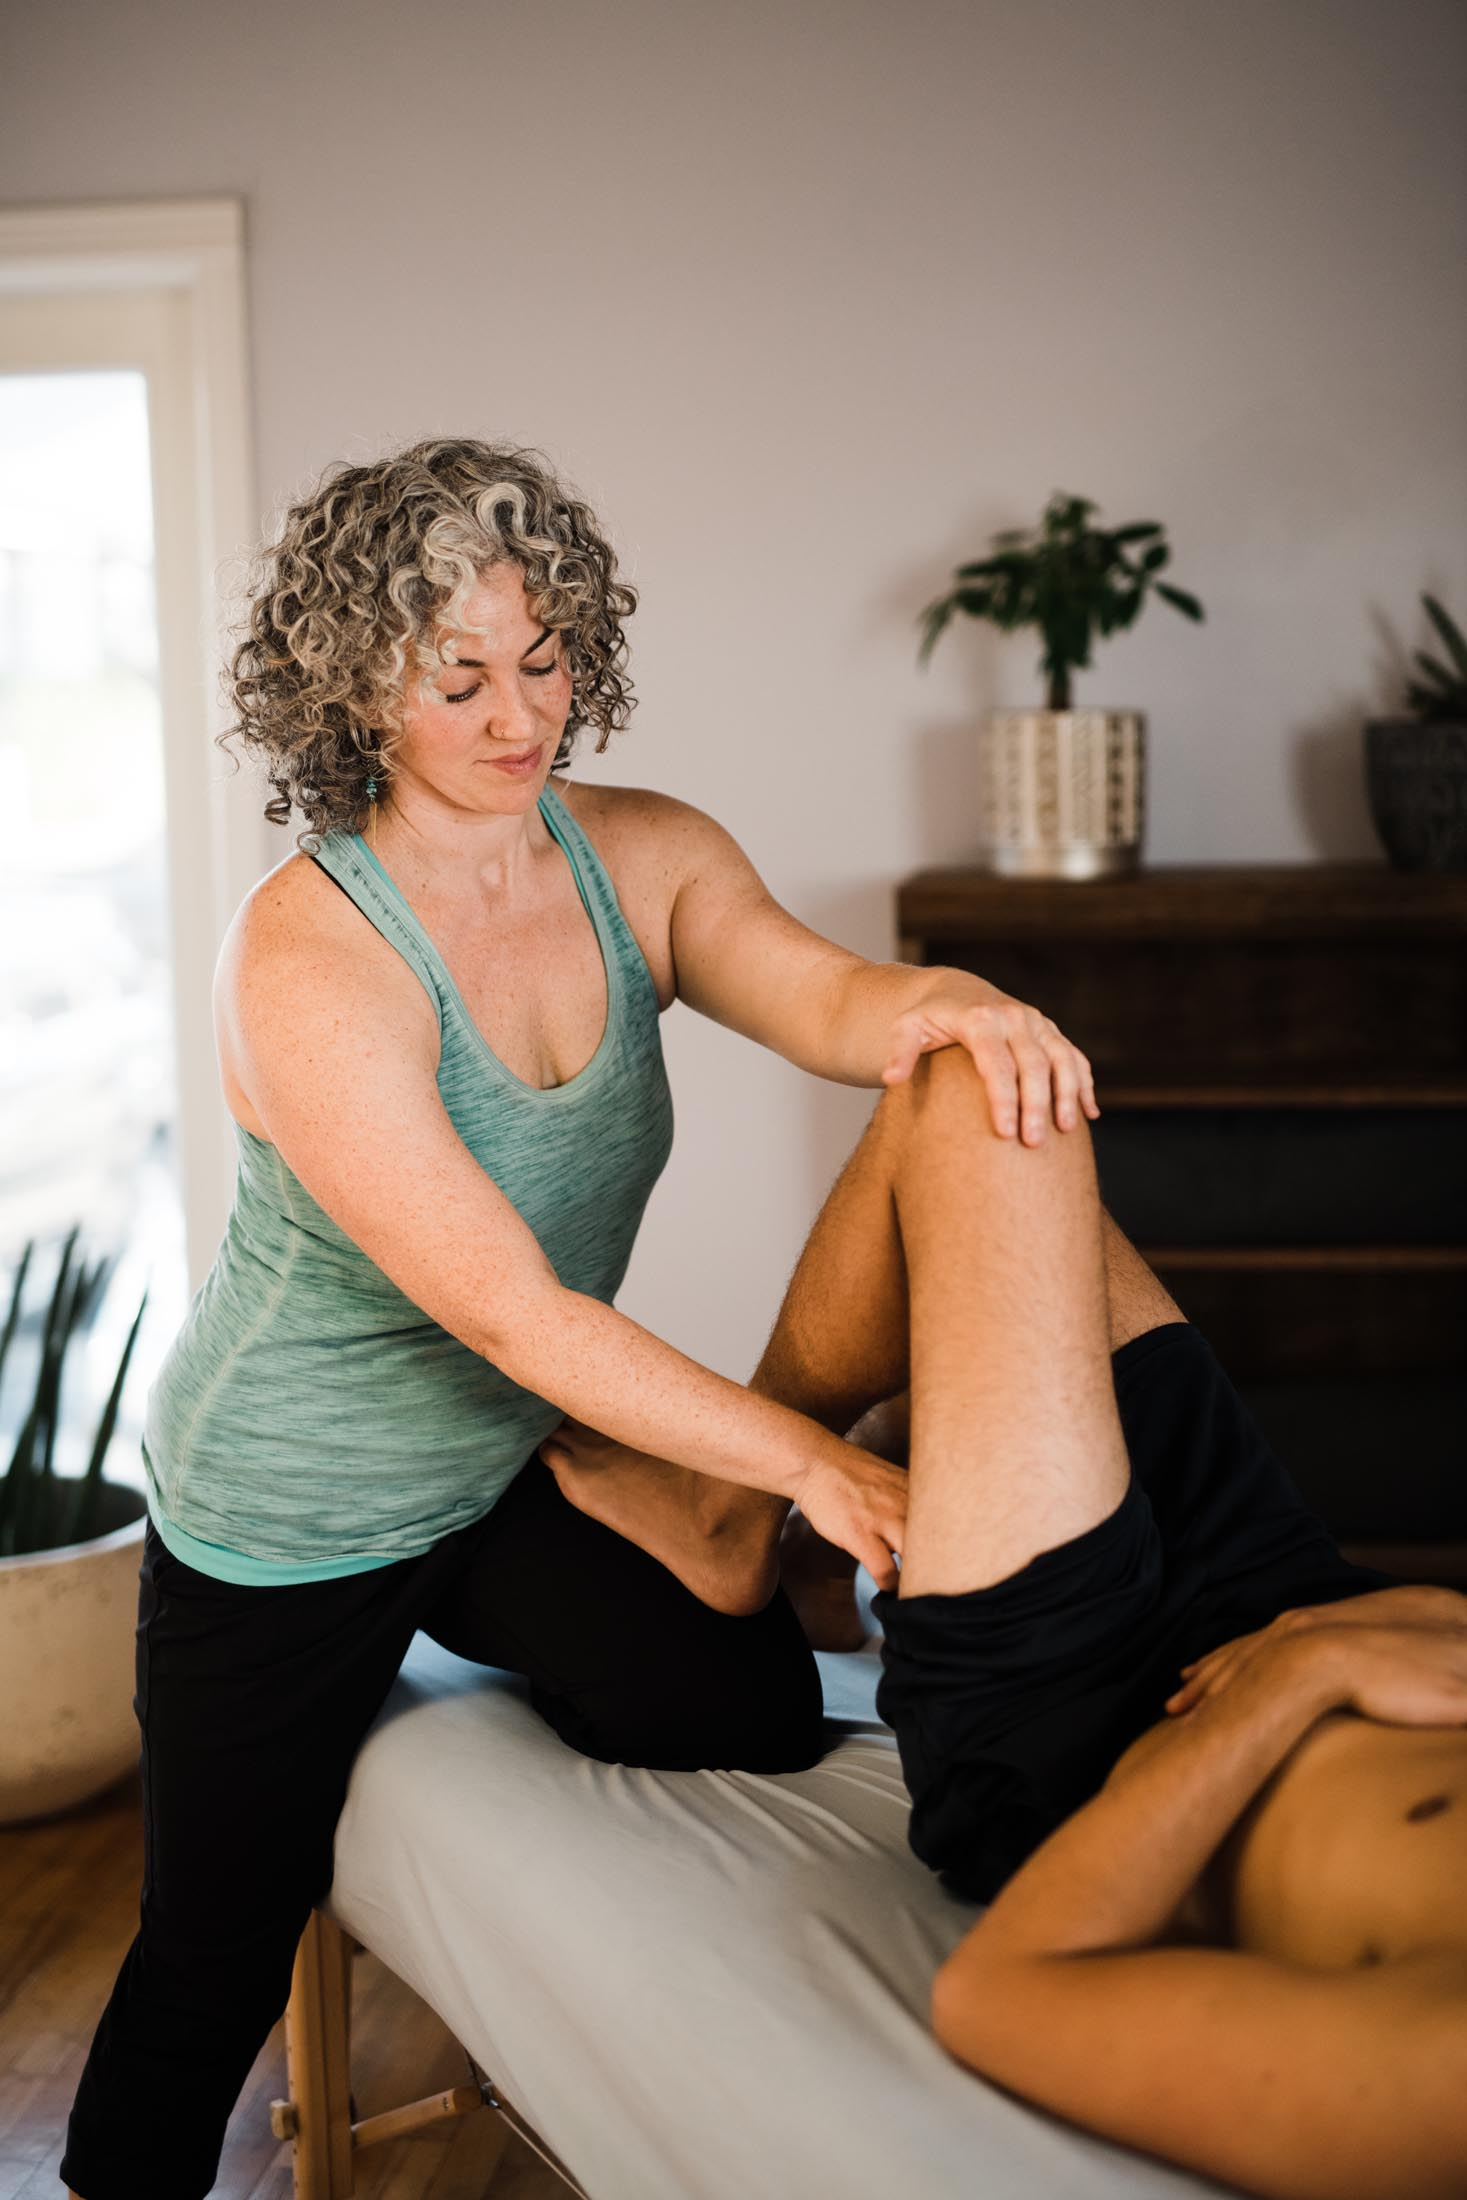 What is a session like? - Rolfing sessions are 75-90 minutes. During our first session, we will spend some time going over your health history and your goals for our work together. After we had some time to chat, I will asses your alignment and movement patterns in both standing and walking. I'm looking to see where your body is balanced and where you have compensatory patterns and tissue adhesions that are potentially causing problems.Most of the session will take place on a massage table. Rolfing is never painful but can be intense (in a hurts so good type of way) at times. At times, I will ask you to make small movements to facilitate a change in the connective tissues. There will be some work done in a seated or standing position.Rolfing attire for men and women is generally underwear or loose fitting gym/yoga clothes. It's important that I have access to your skin but more important that you feel comfortable on the table.